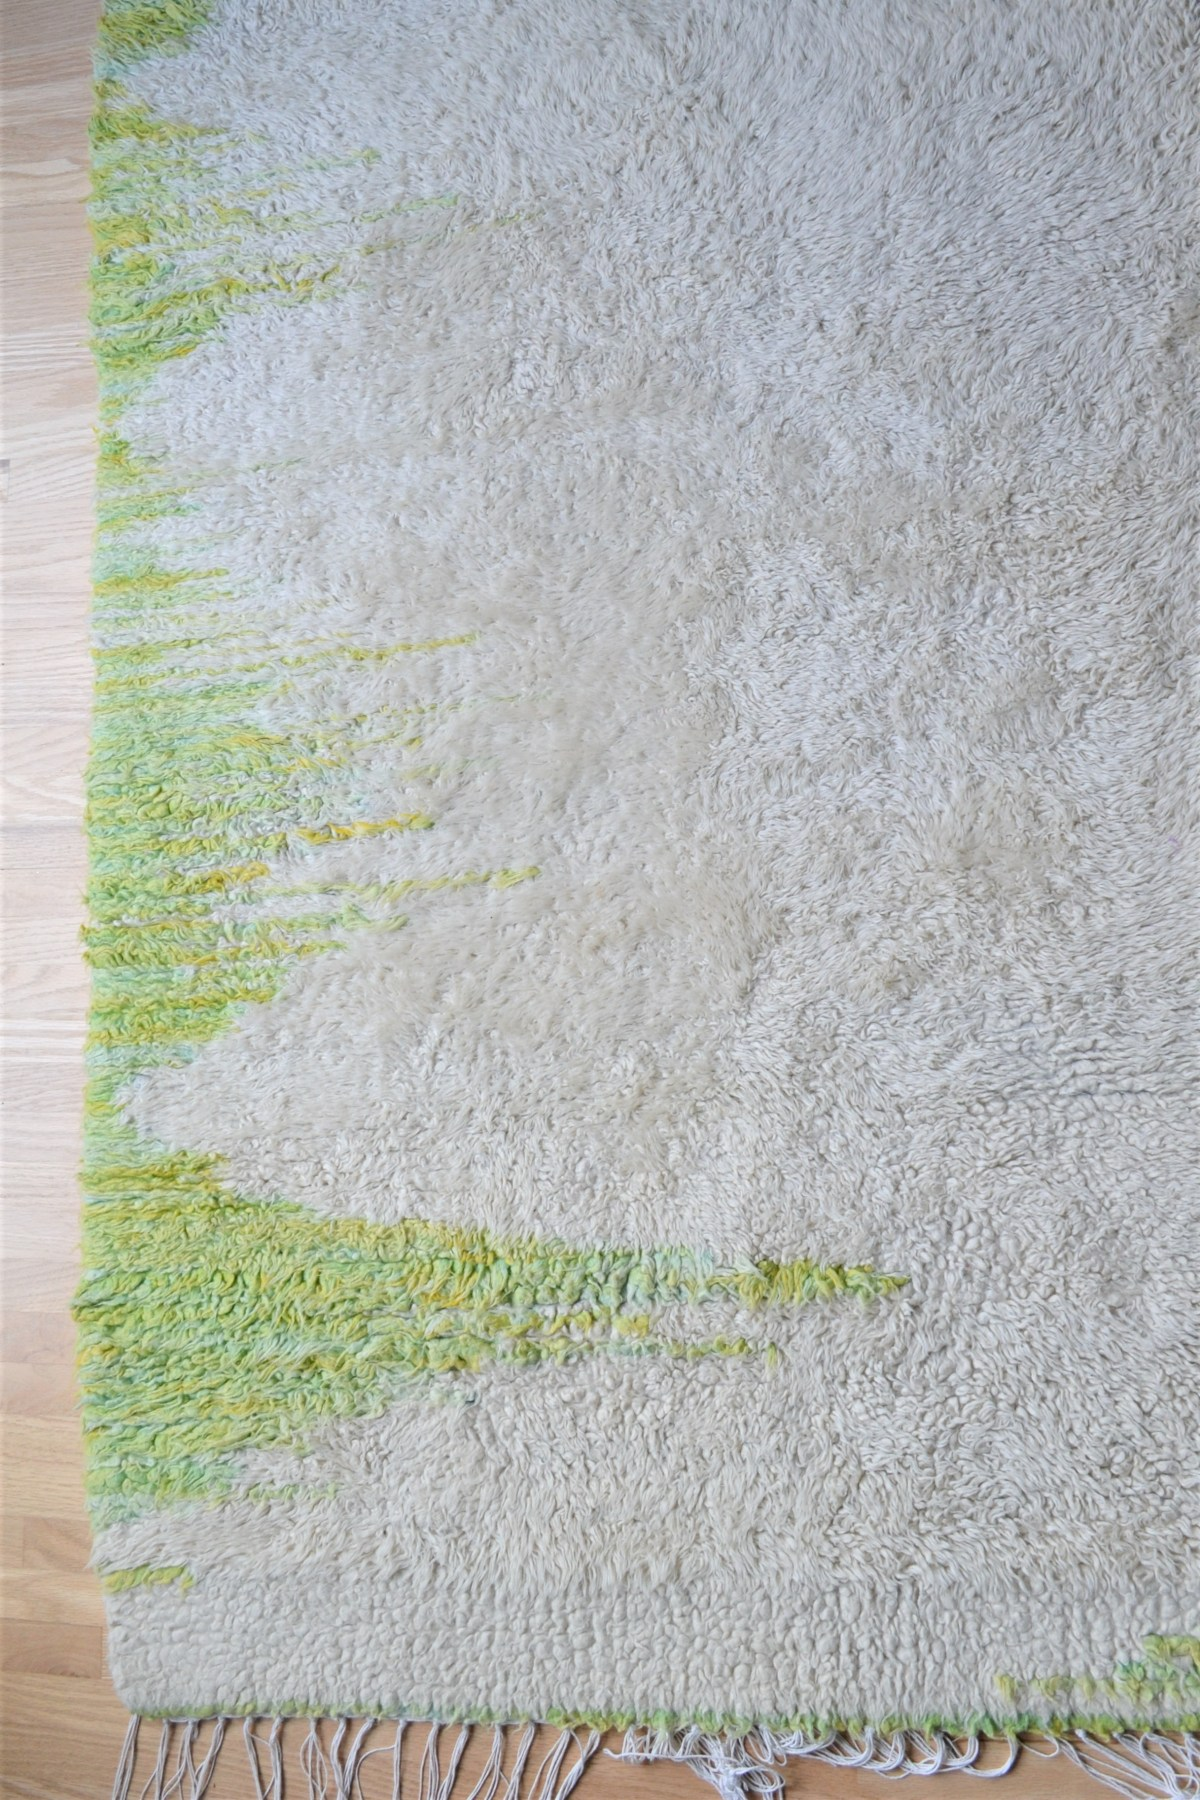 Floor Loom Rug Weaving Inspiration! - white and green